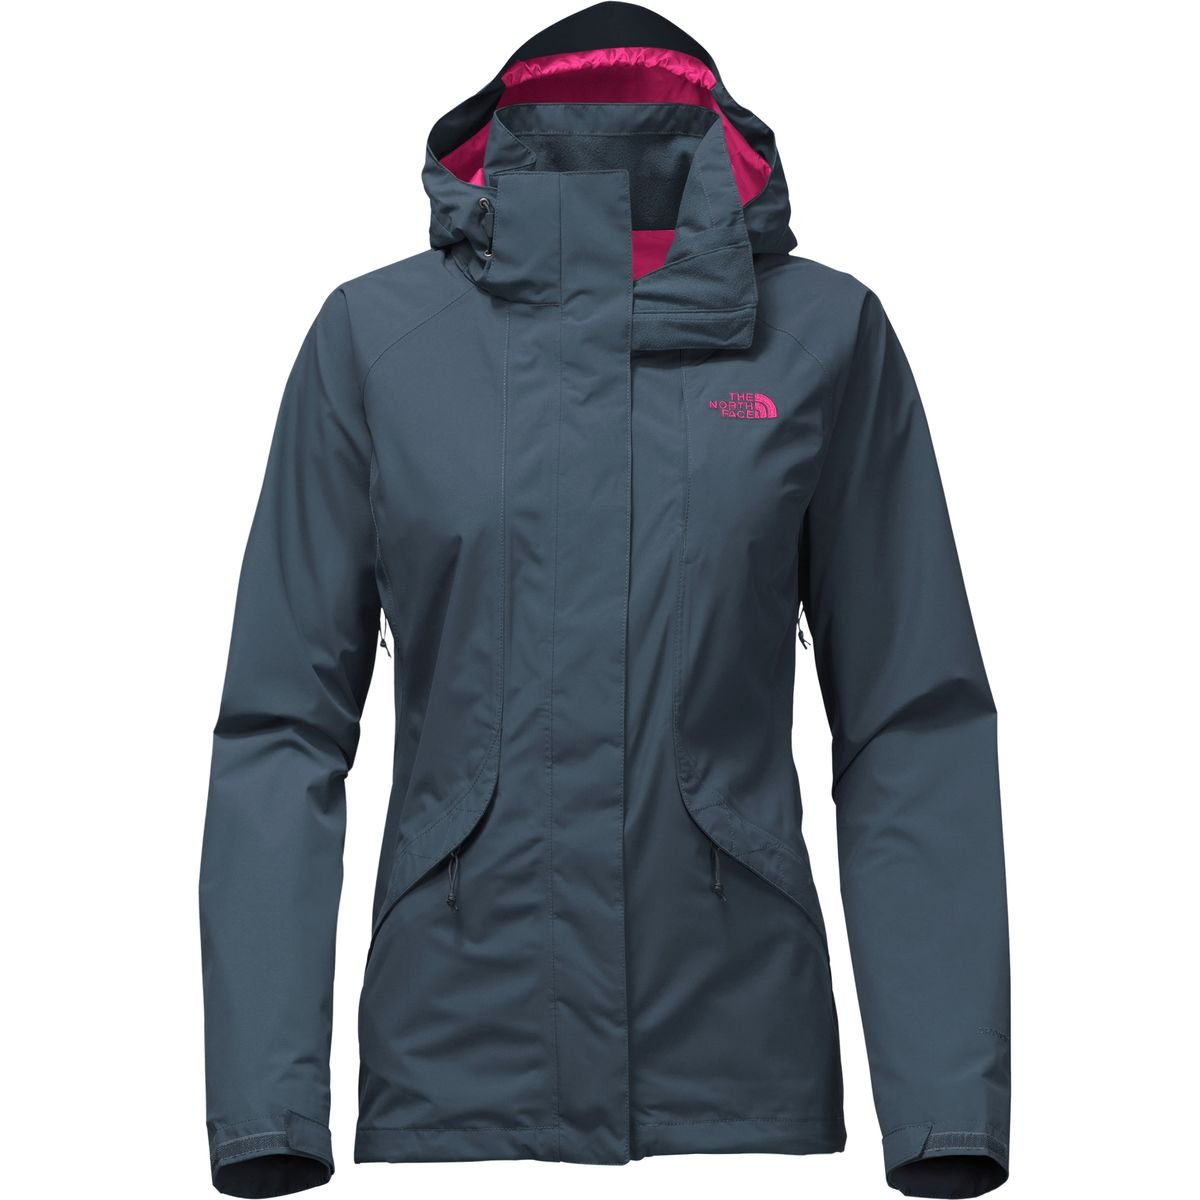 Ink bluee The North Face Women's Boundary Triclimate Jacket